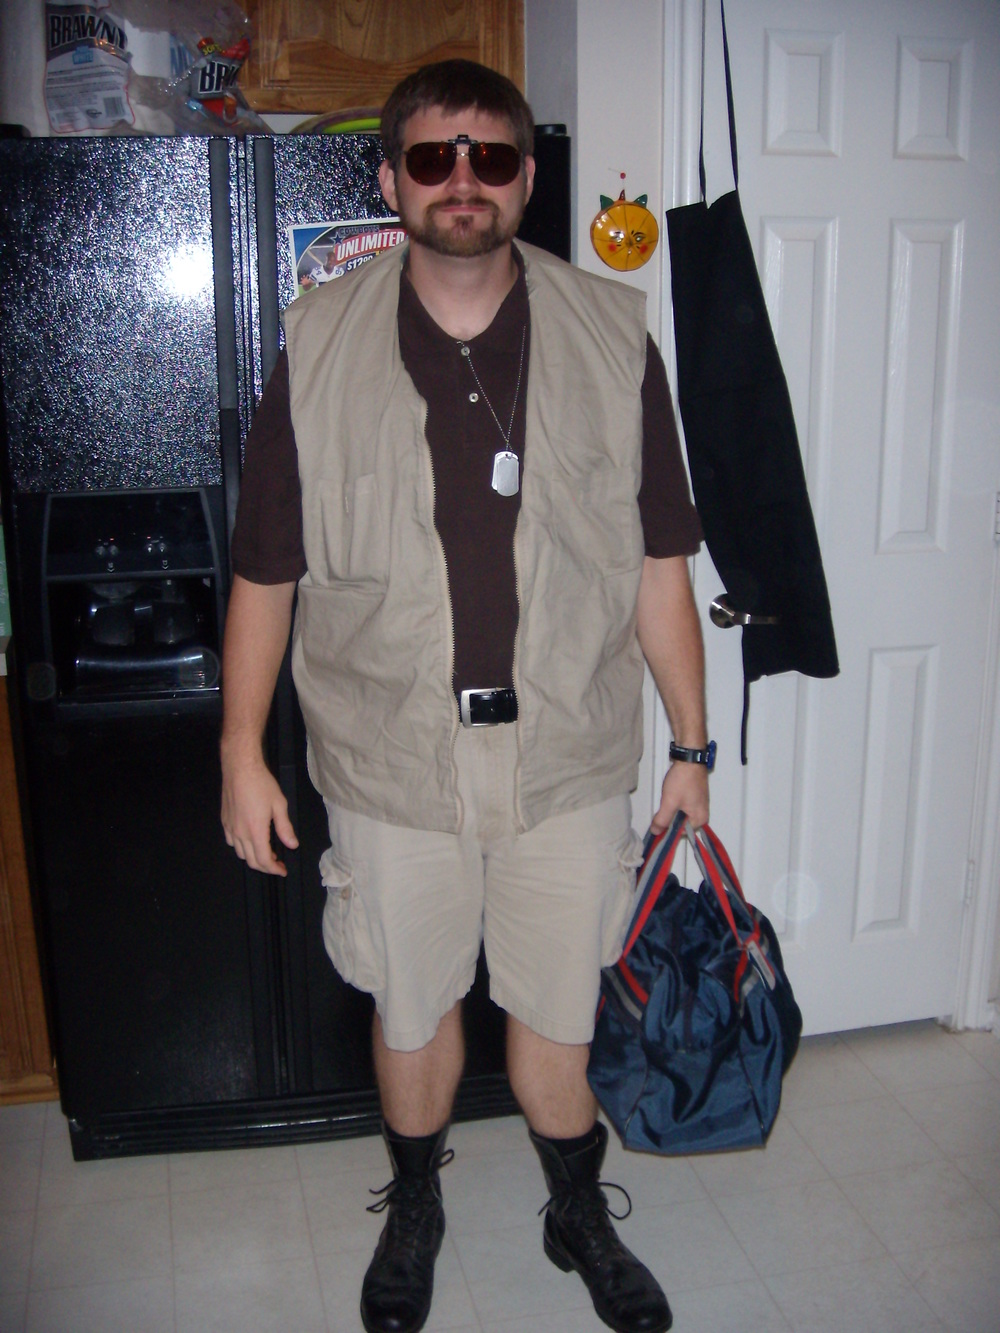 My Halloween costume from 2008 wherein Iu0027m dressed as Walter Sobchak from The Big Lebowski & 10 Cloverfield Lane u2014